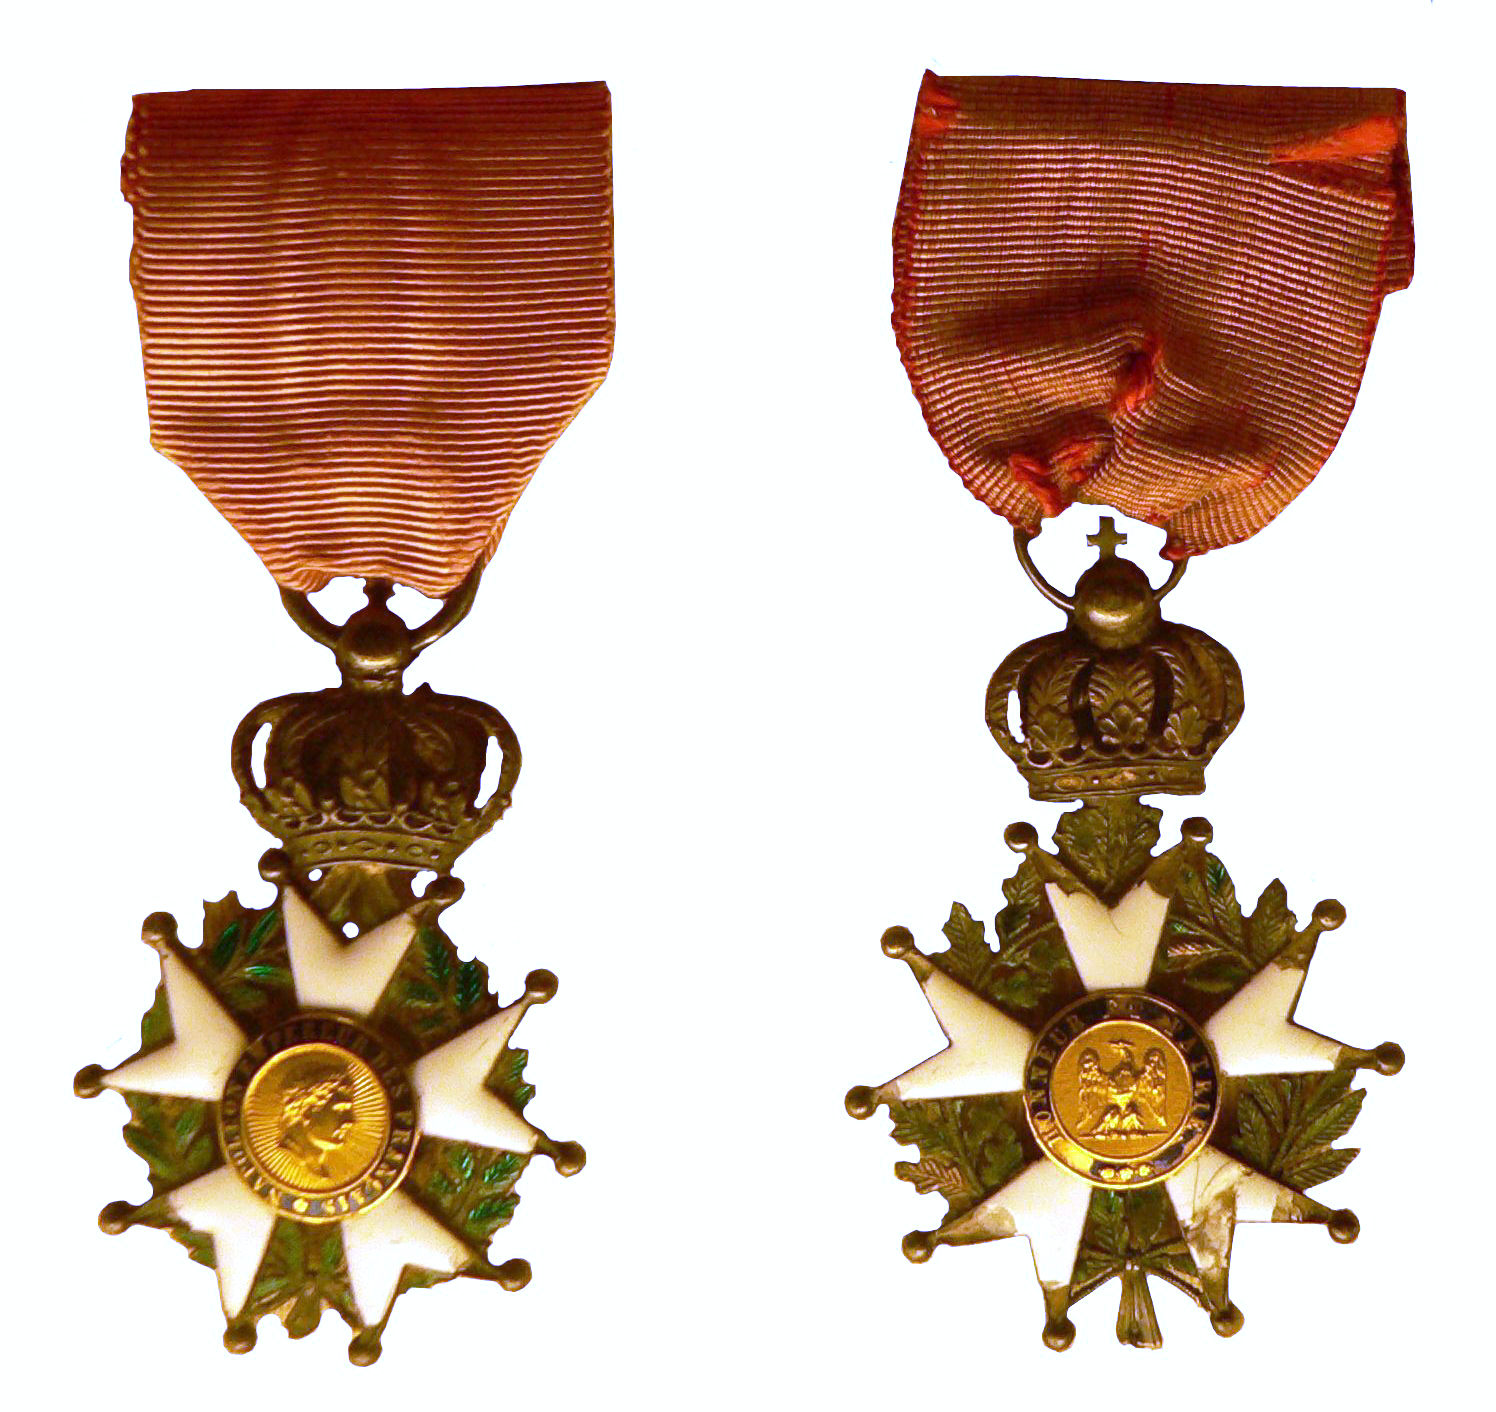 Chevalier-legion-dhonneur-empire.jpg